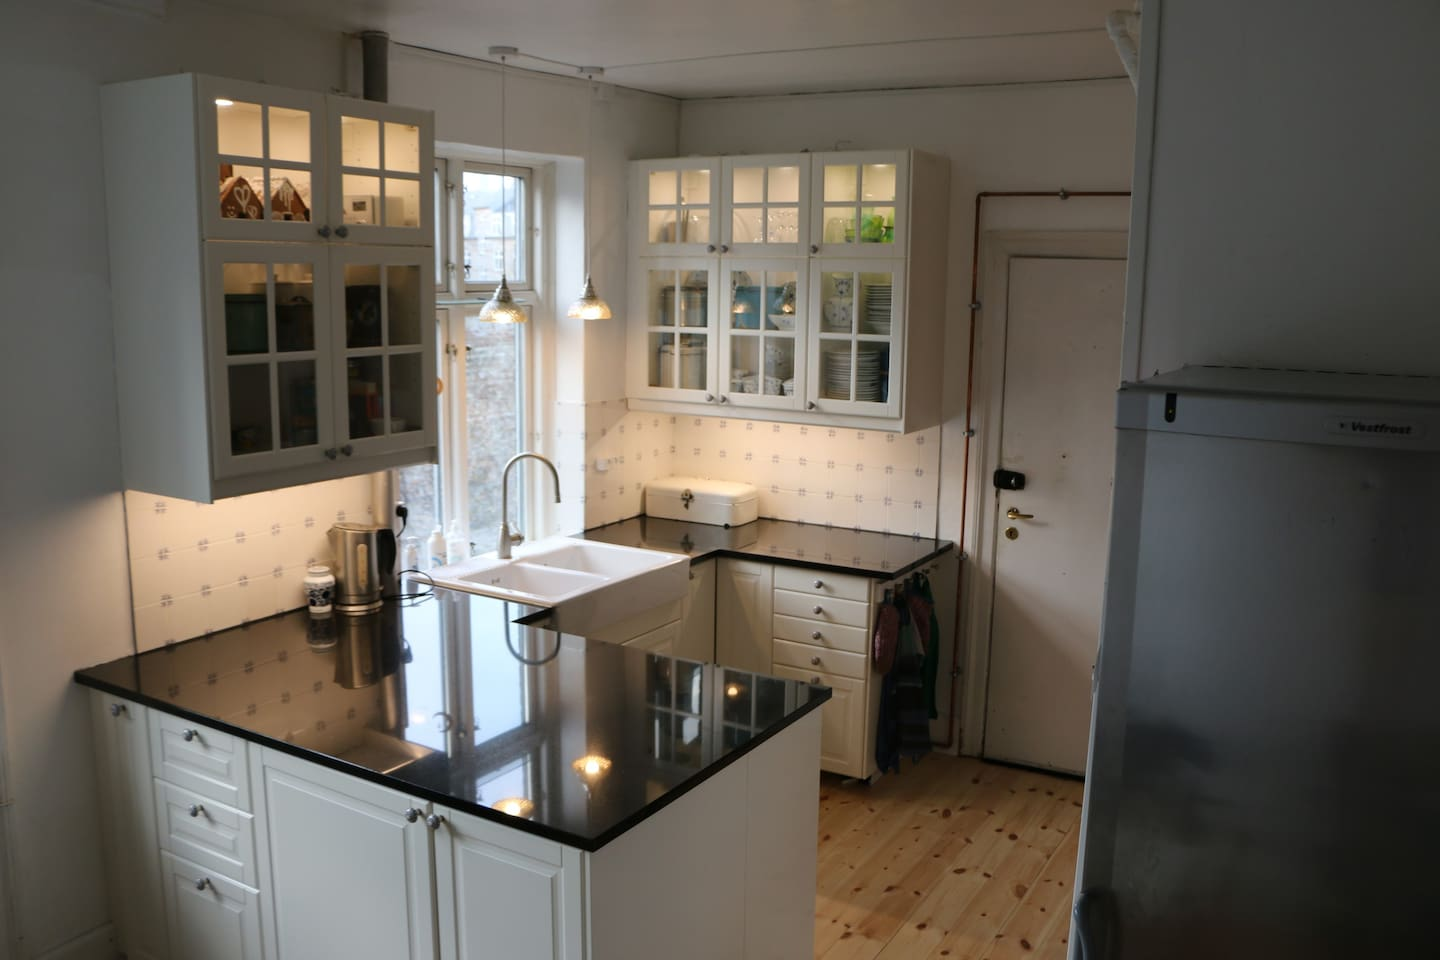 our kitchen renovated December 2017